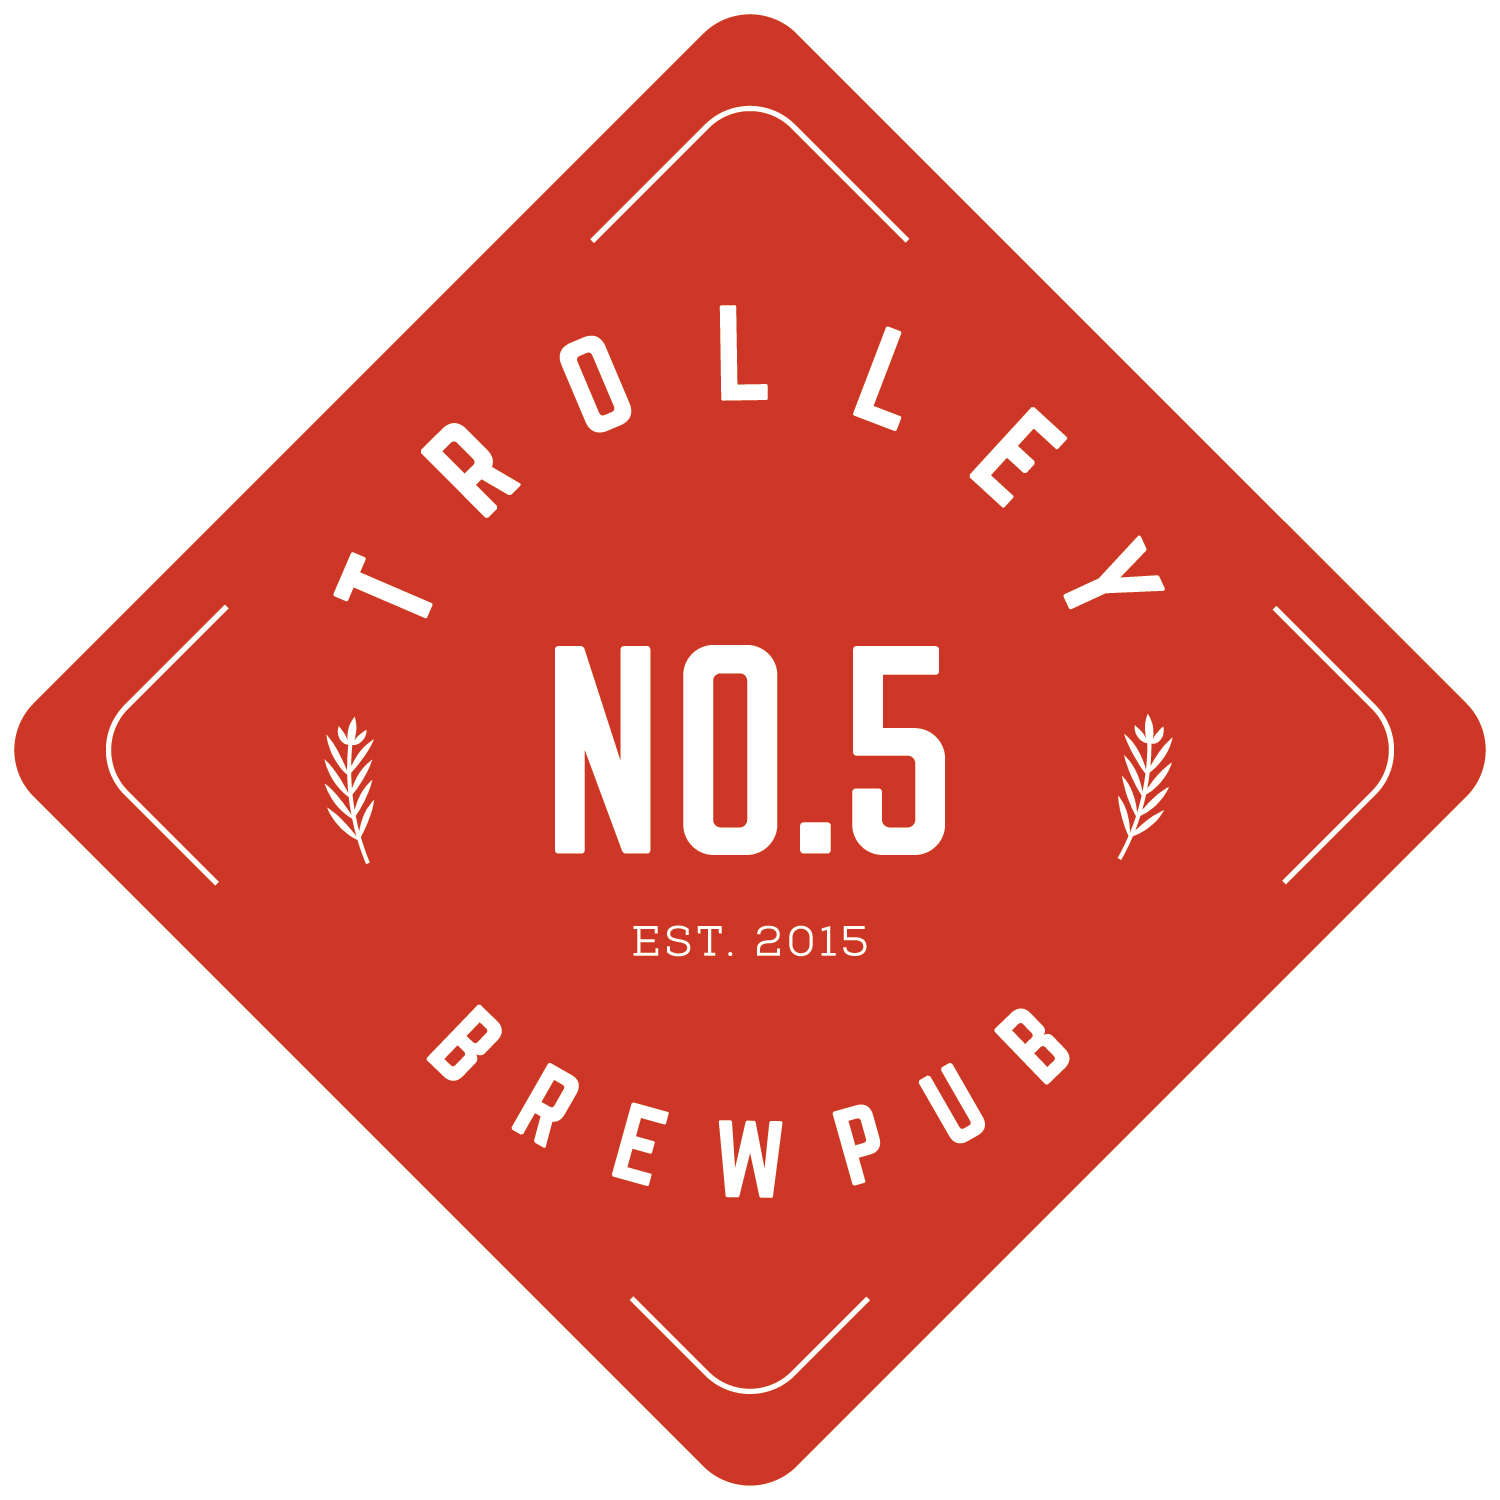 Trolley 5 logo